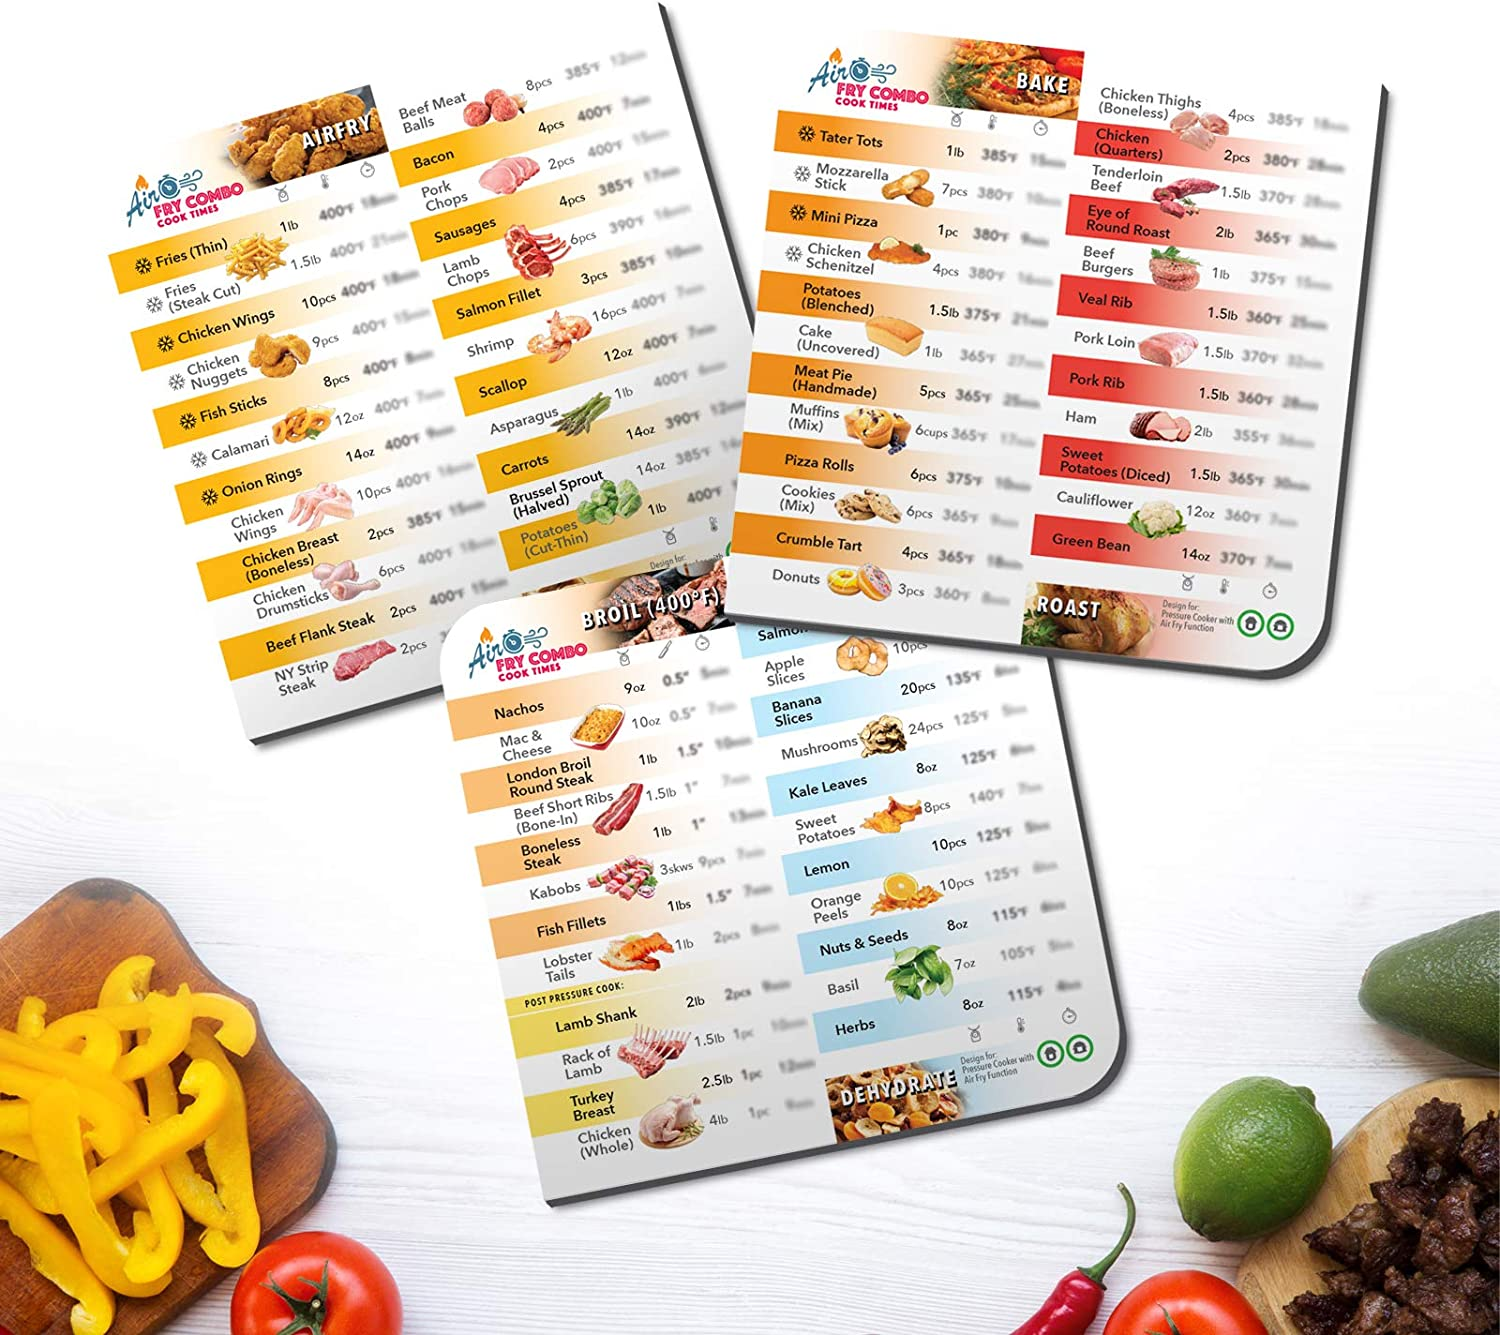 Everacc Air Fryer Magnetic Cheat Sheet for Instant Pot Duo Crisp Lid, 3-Pack Accessories, 5 Functional Cooking Time Charts as Quick Reference Guide on 72 Foods.